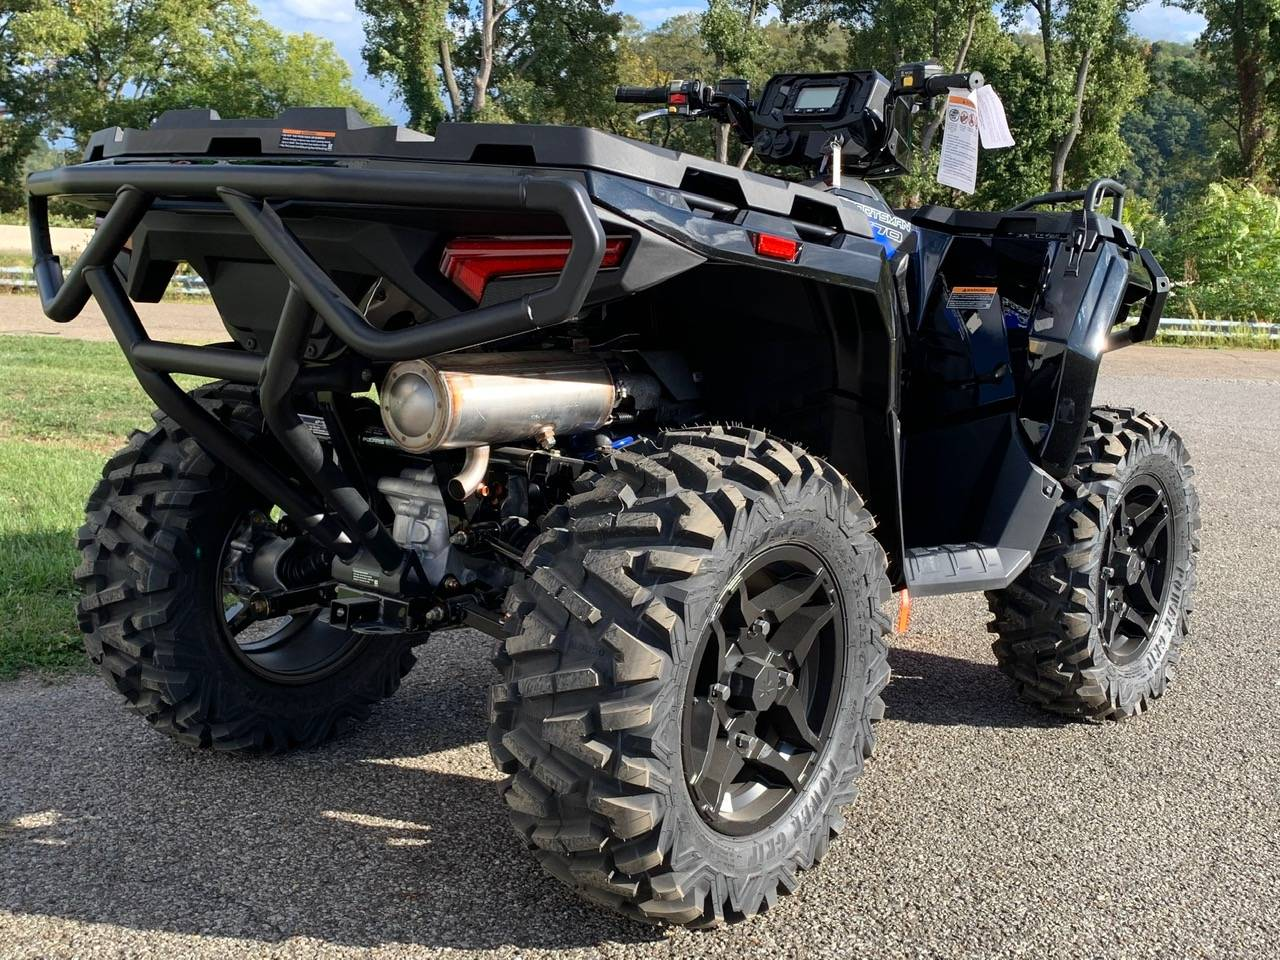 2021 Polaris Sportsman 570 Trail in Brilliant, Ohio - Photo 3